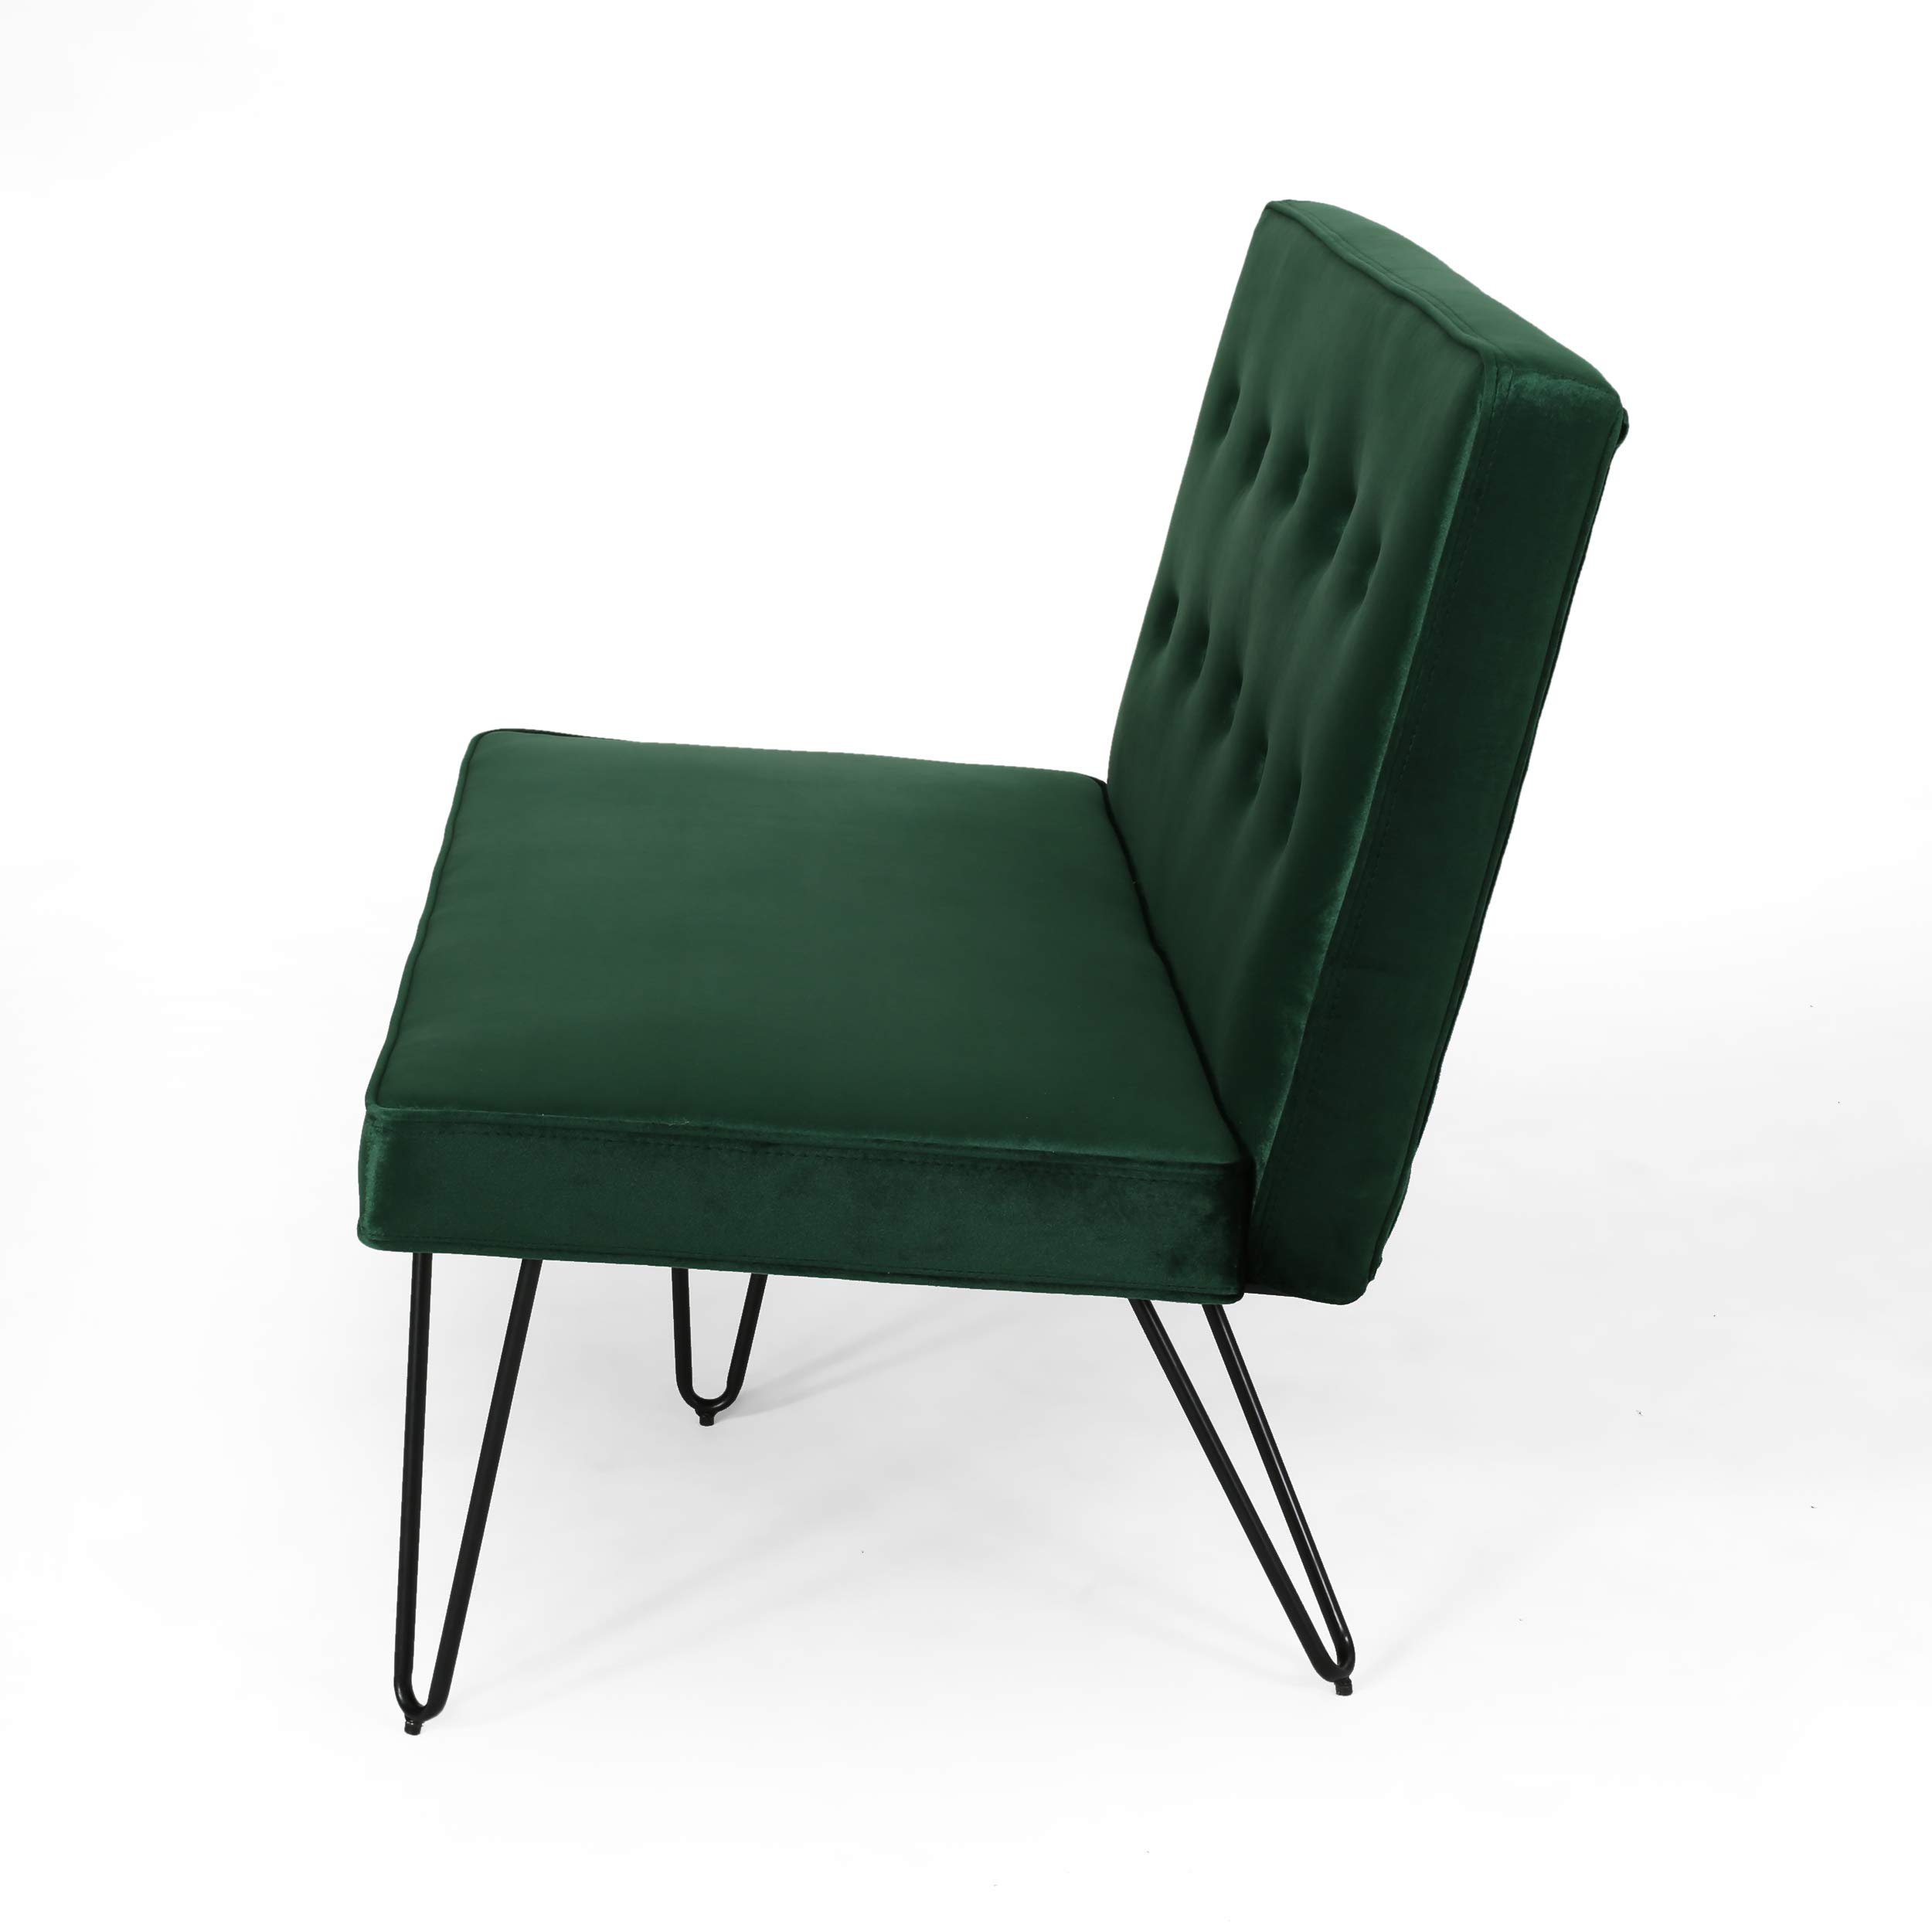 Beatrice Minimalist Dining Bench Settee with Tufted Velvet Cushion and Iron Legs - Emerald and Black by Great Deal Furniture (Image #4)